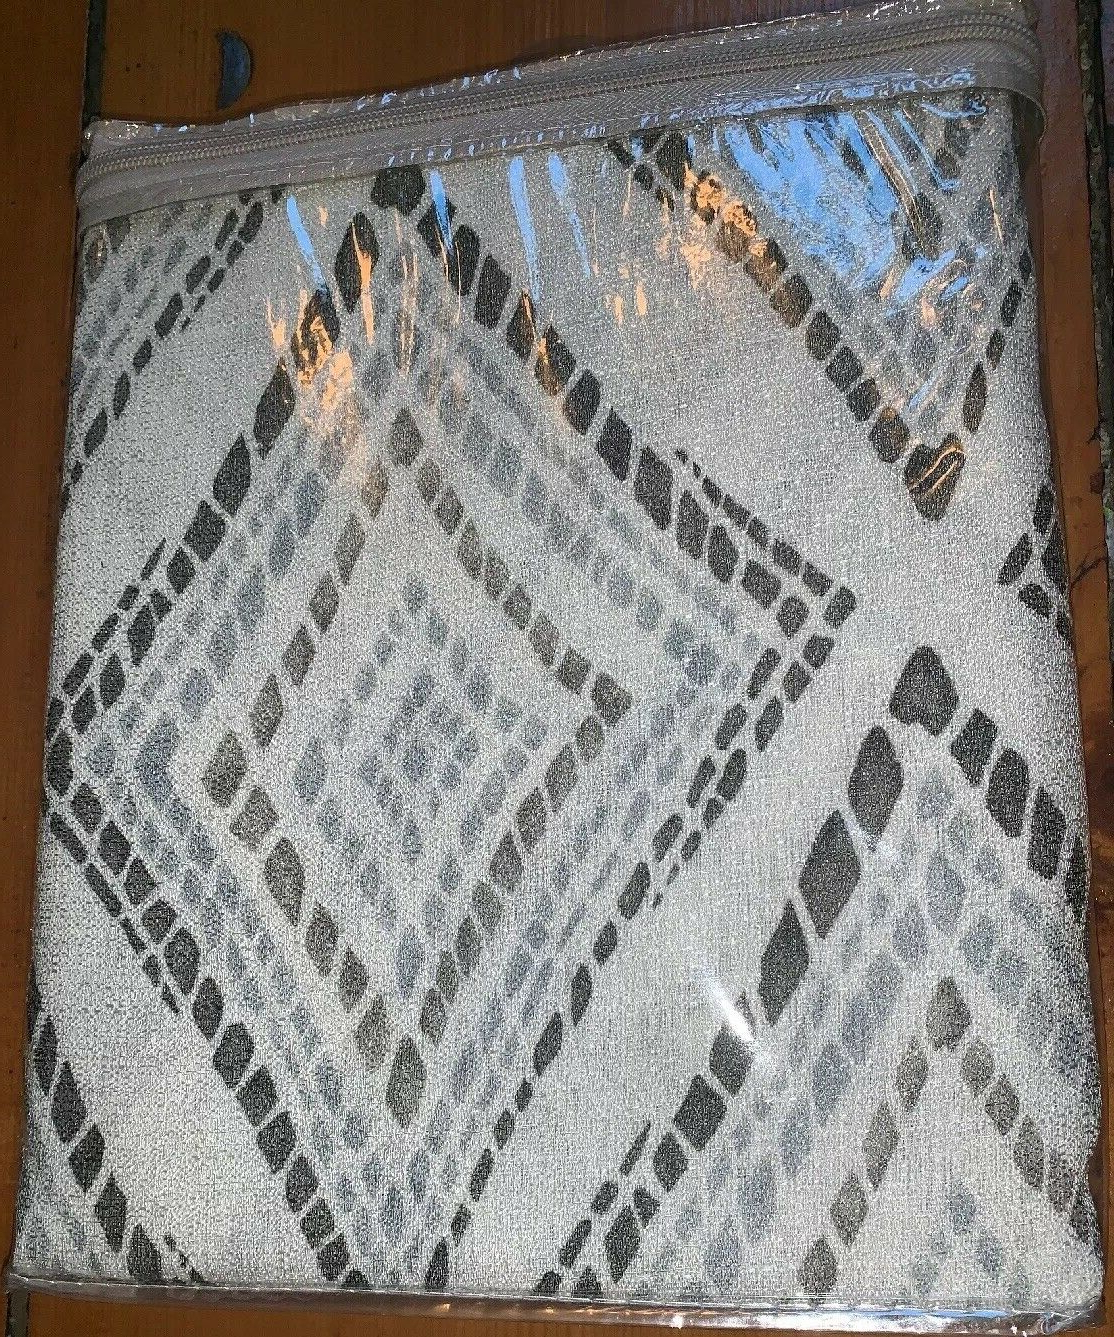 "Current Ink+ivy Bas Printed Etched Diamond Window Set Of 2 Panels 50x95"" Grey #ii40 720 For Ink Ivy Ankara Cotton Printed Single Curtain Panels (View 22 of 22)"